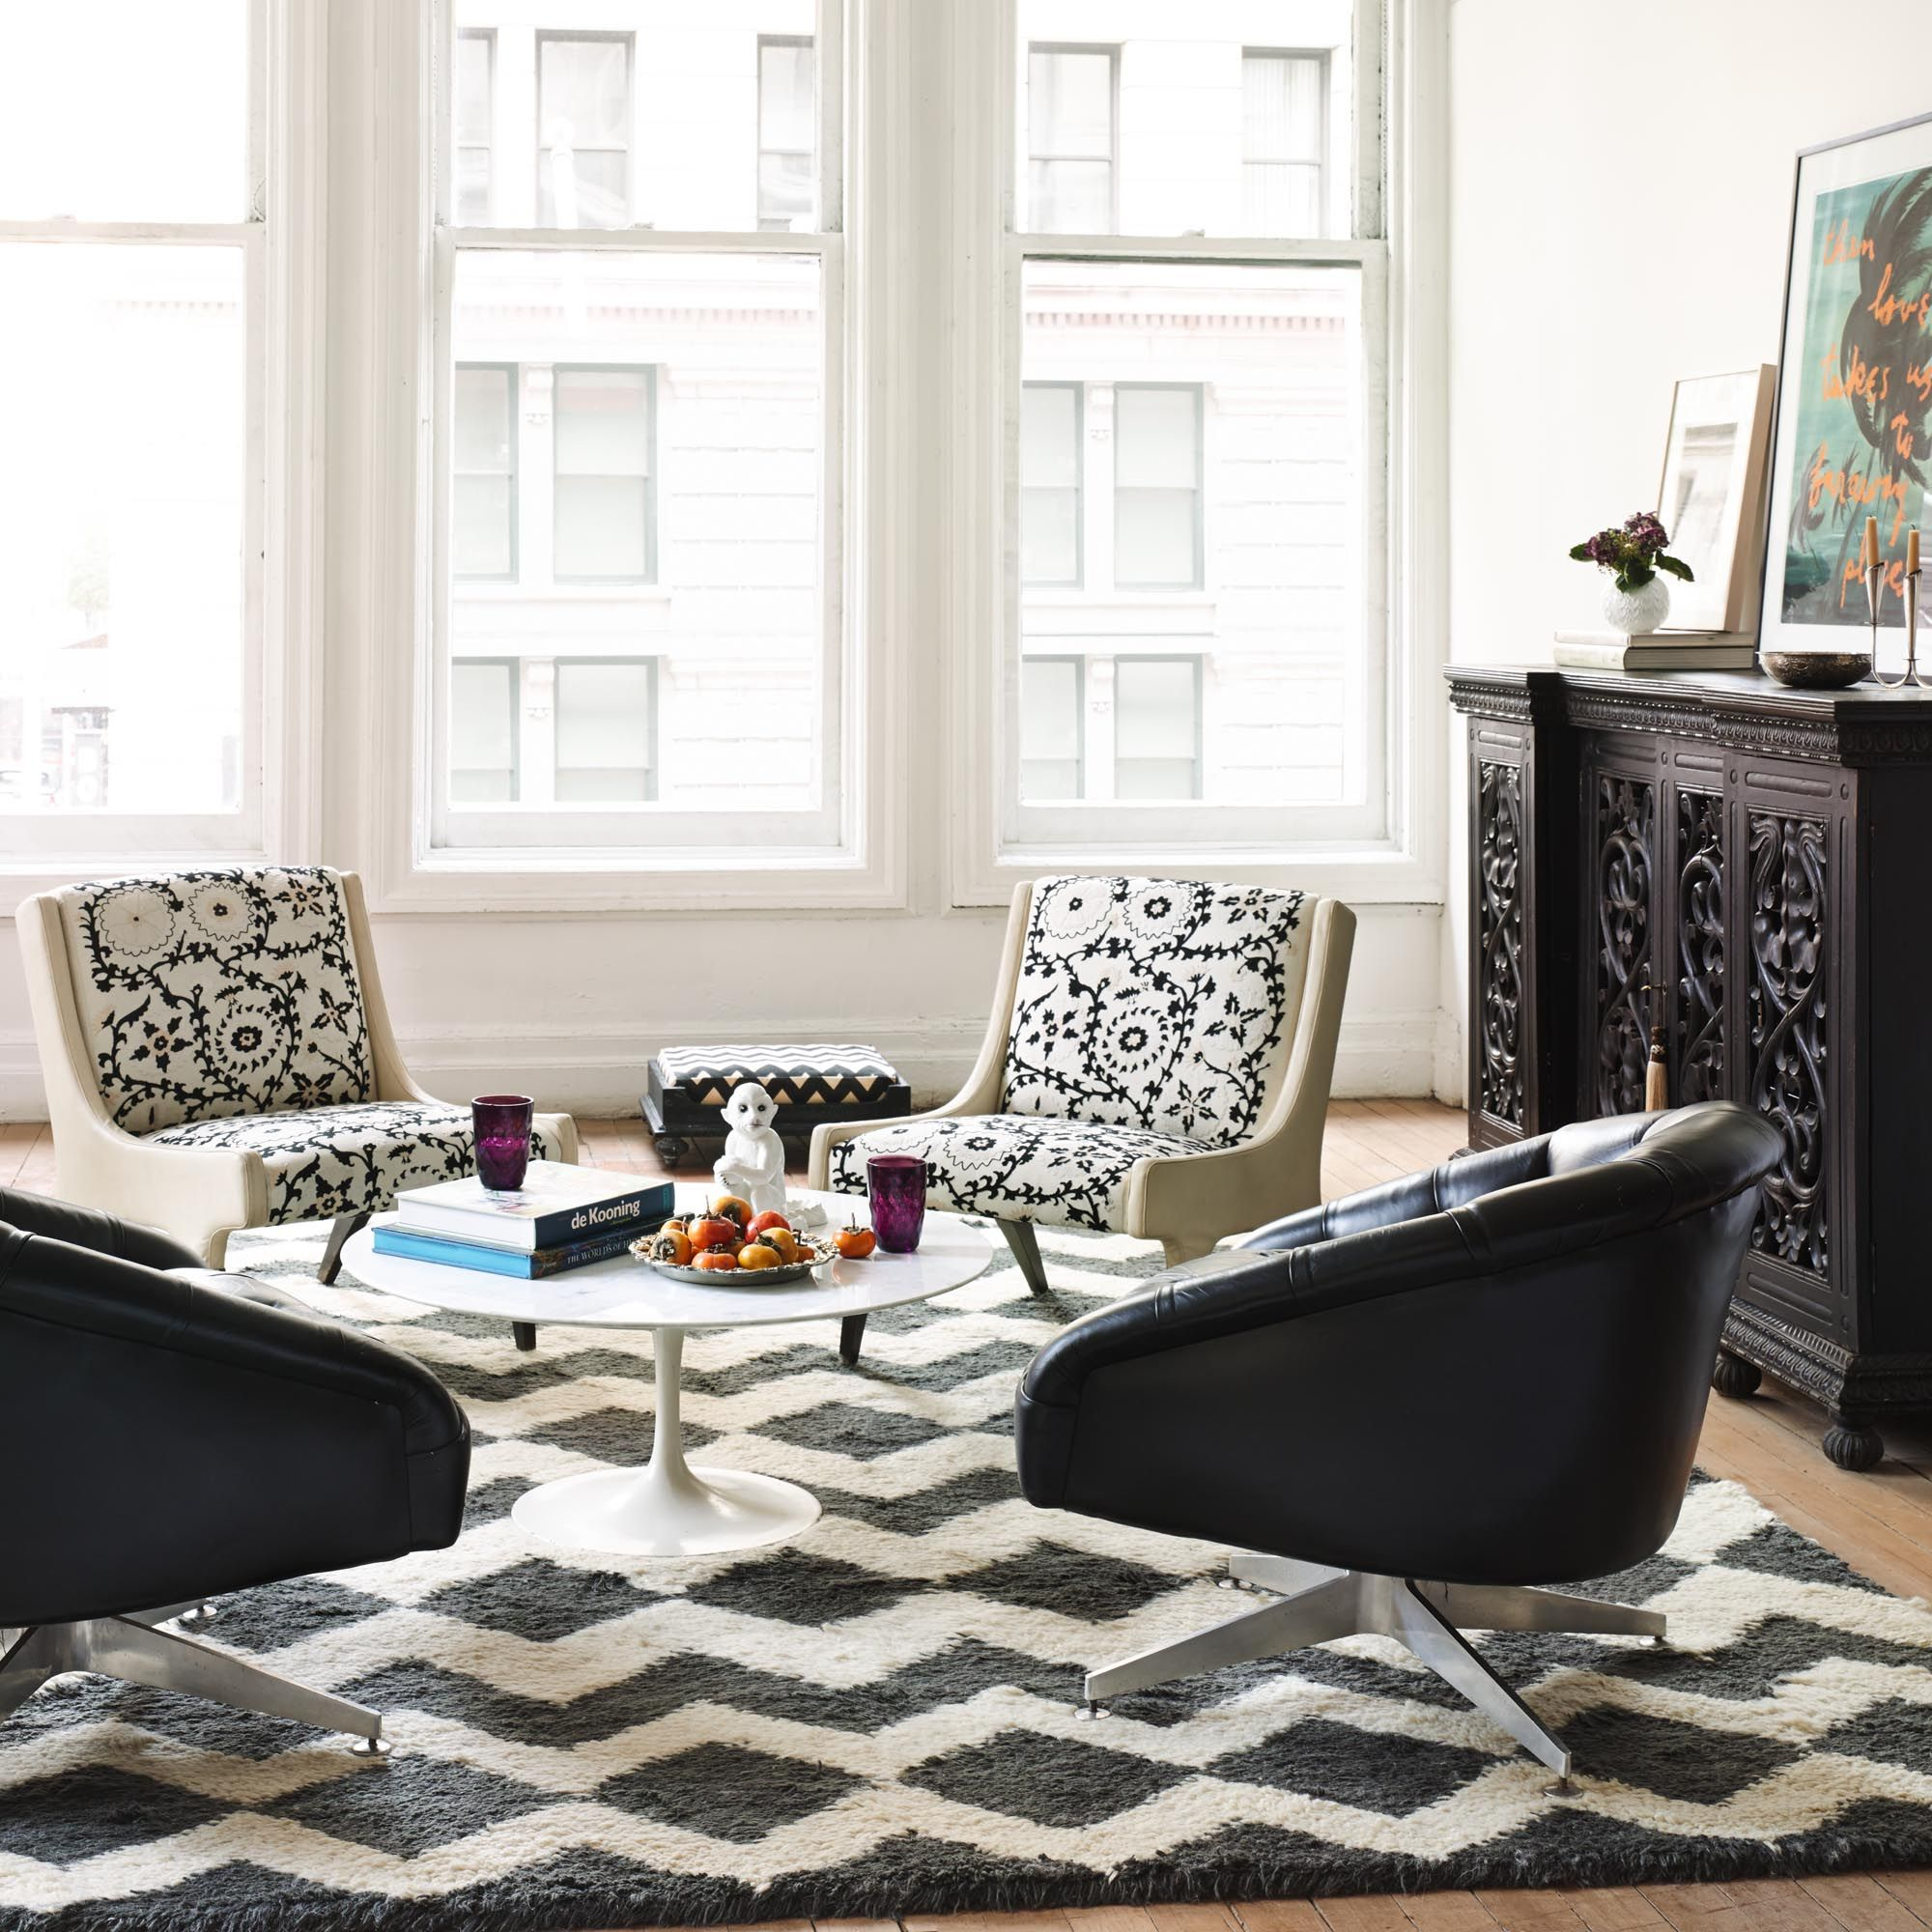 Trend alert! 11 hot home decorating ideas for 2014   Living spaces ...